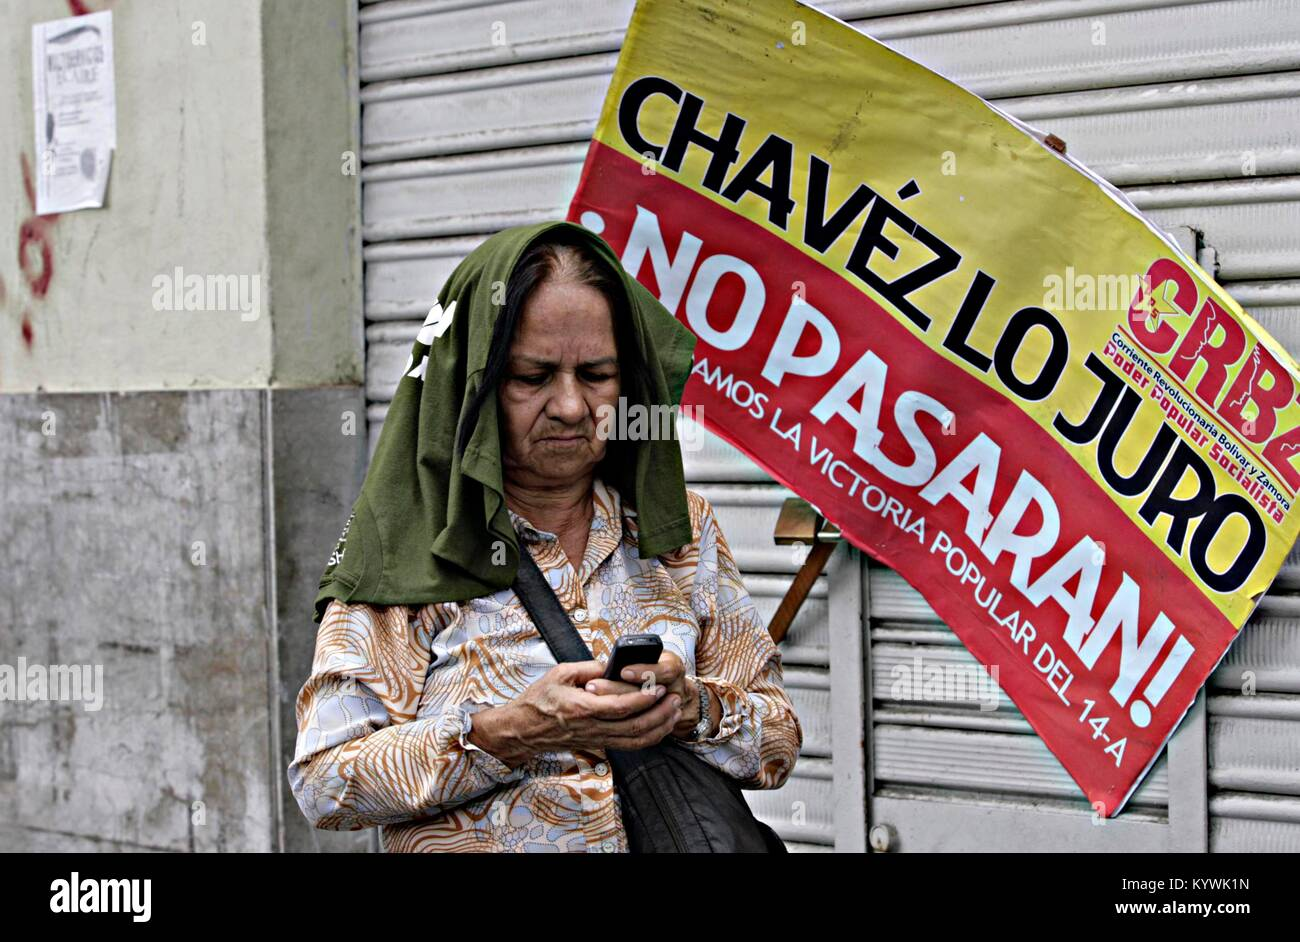 Caracas, Distrito Capital, Venezuela. 19th Apr, 2013. April 19, 2013. followers of the former presidenthavez and the ''Chavismo'', are present around the national assembly for the swearing-in of Nicolas Maduro, as president of Venezuela. Photo: Juan Carlos Hernandez Credit: Juan Carlos Hernandez/ZUMA Wire/Alamy Live News Stock Photo